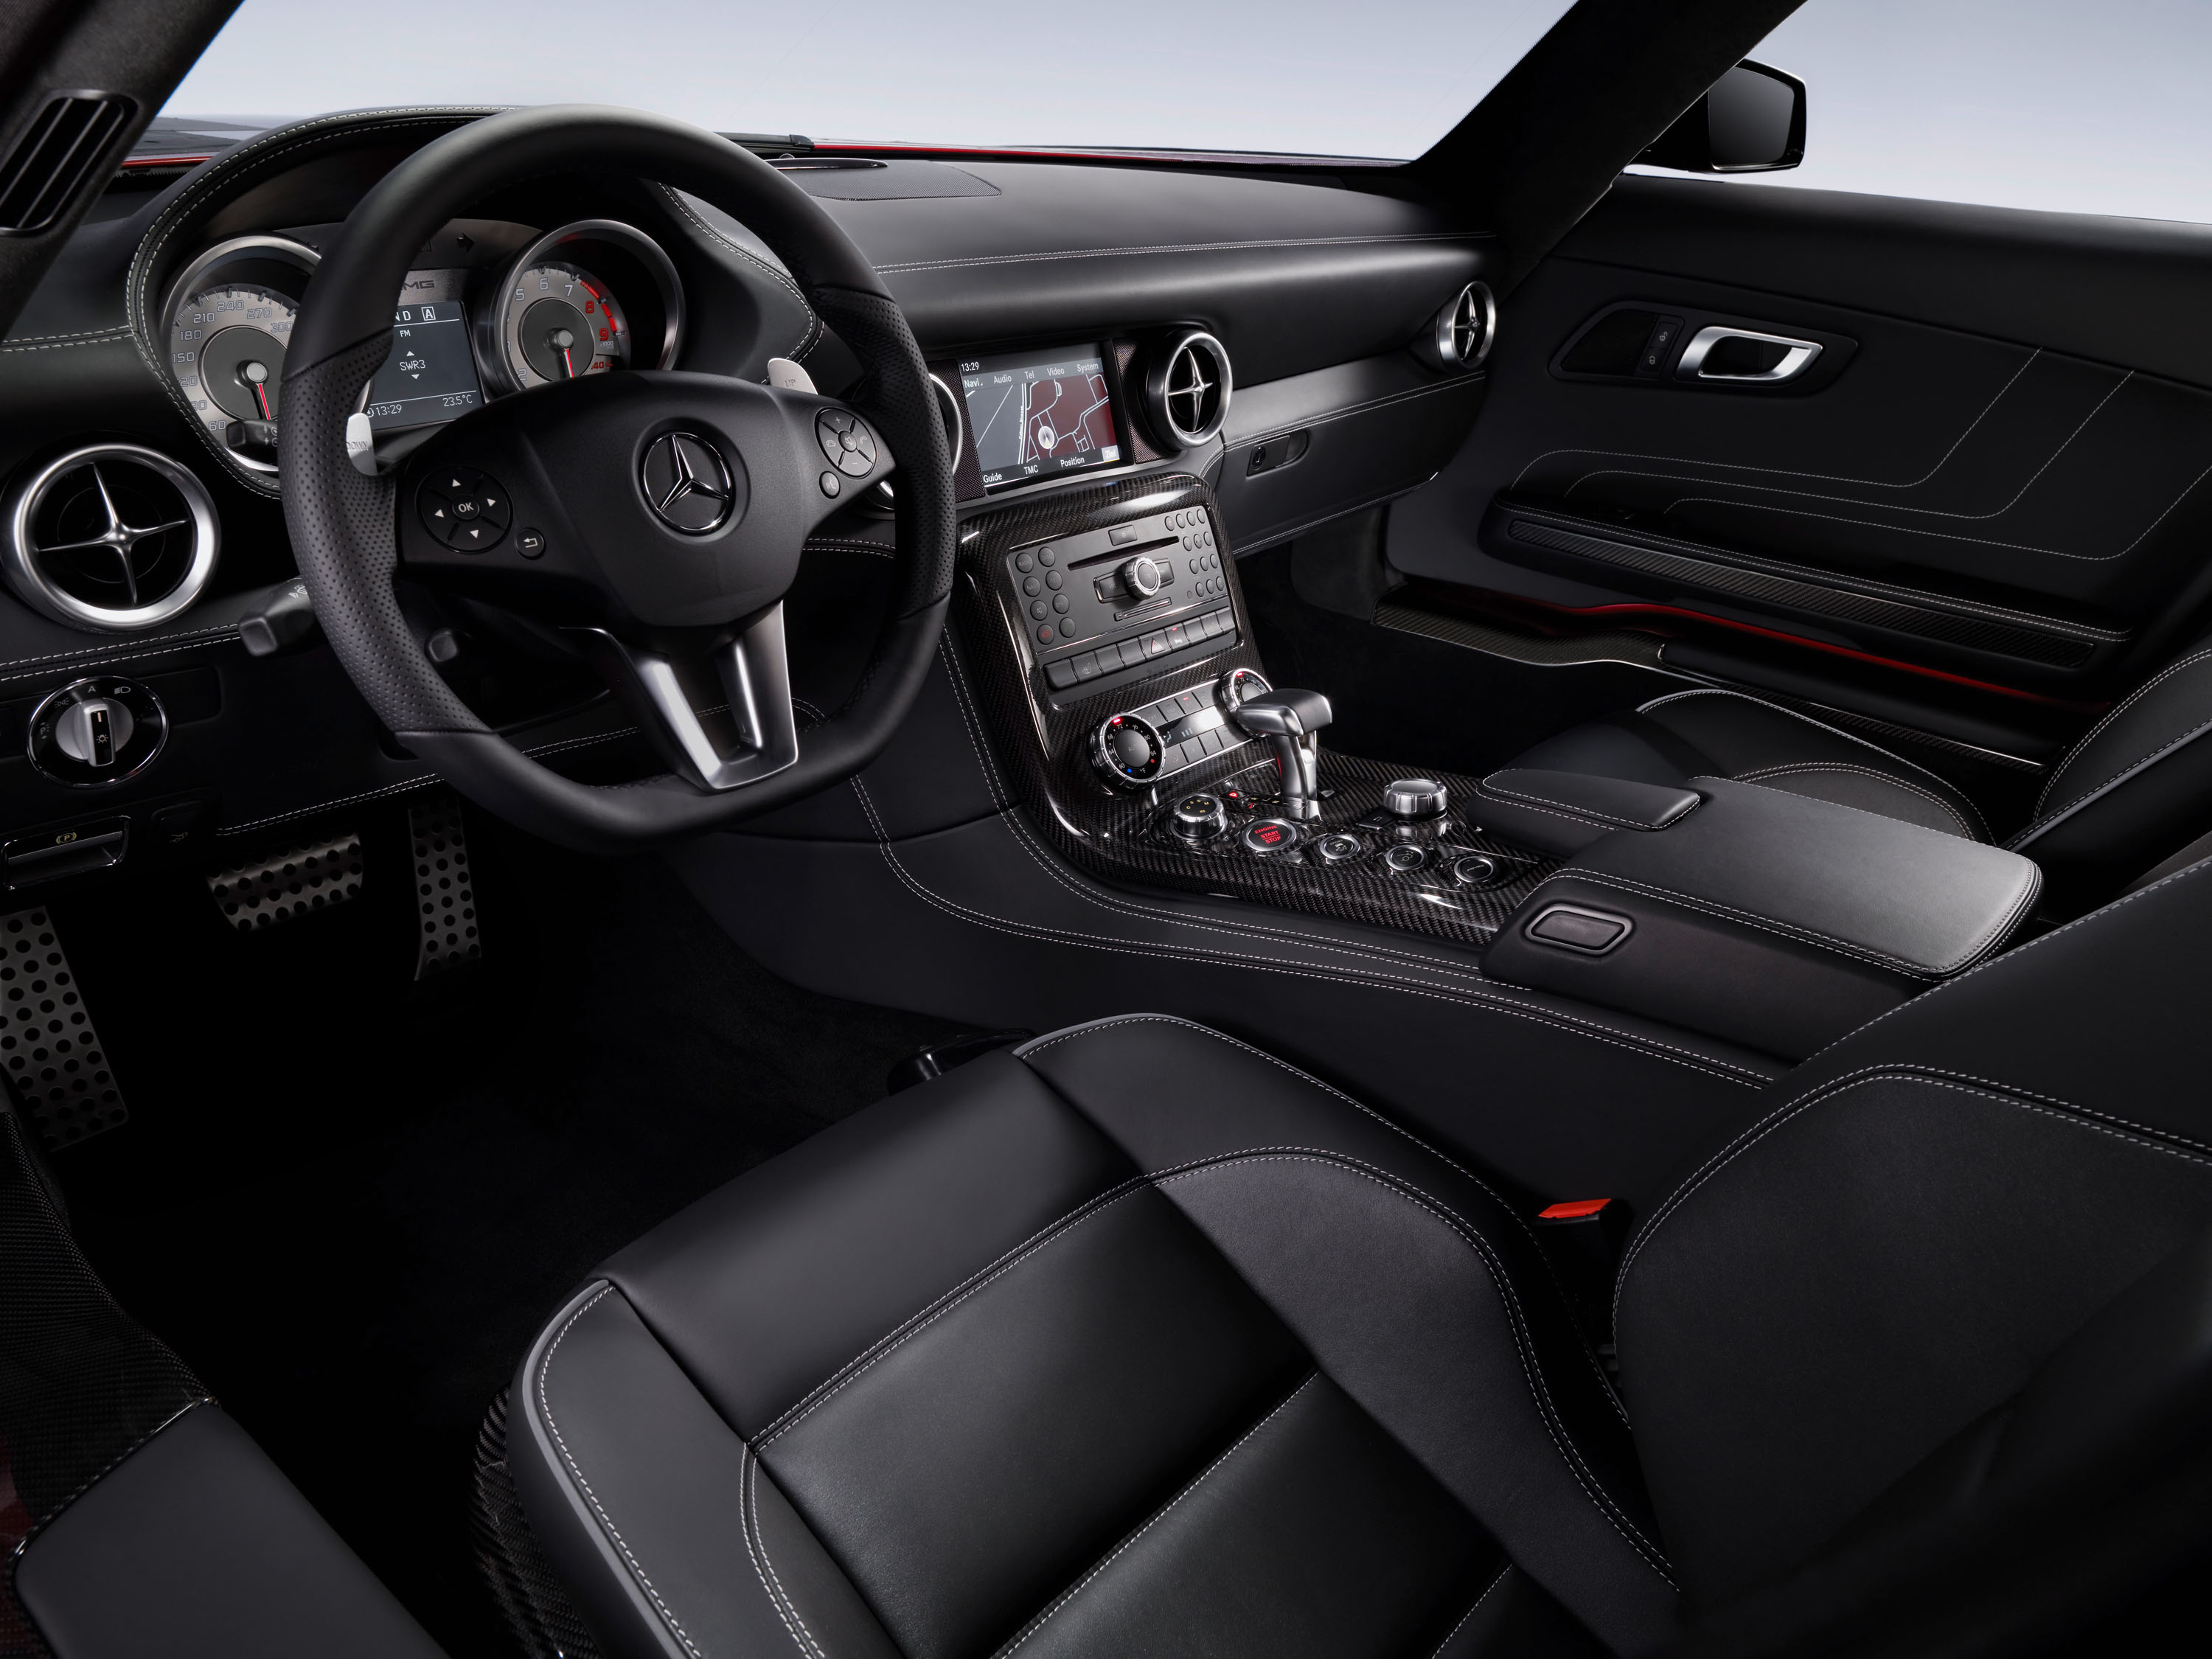 the interior of the mercedes benz sls amg. Black Bedroom Furniture Sets. Home Design Ideas